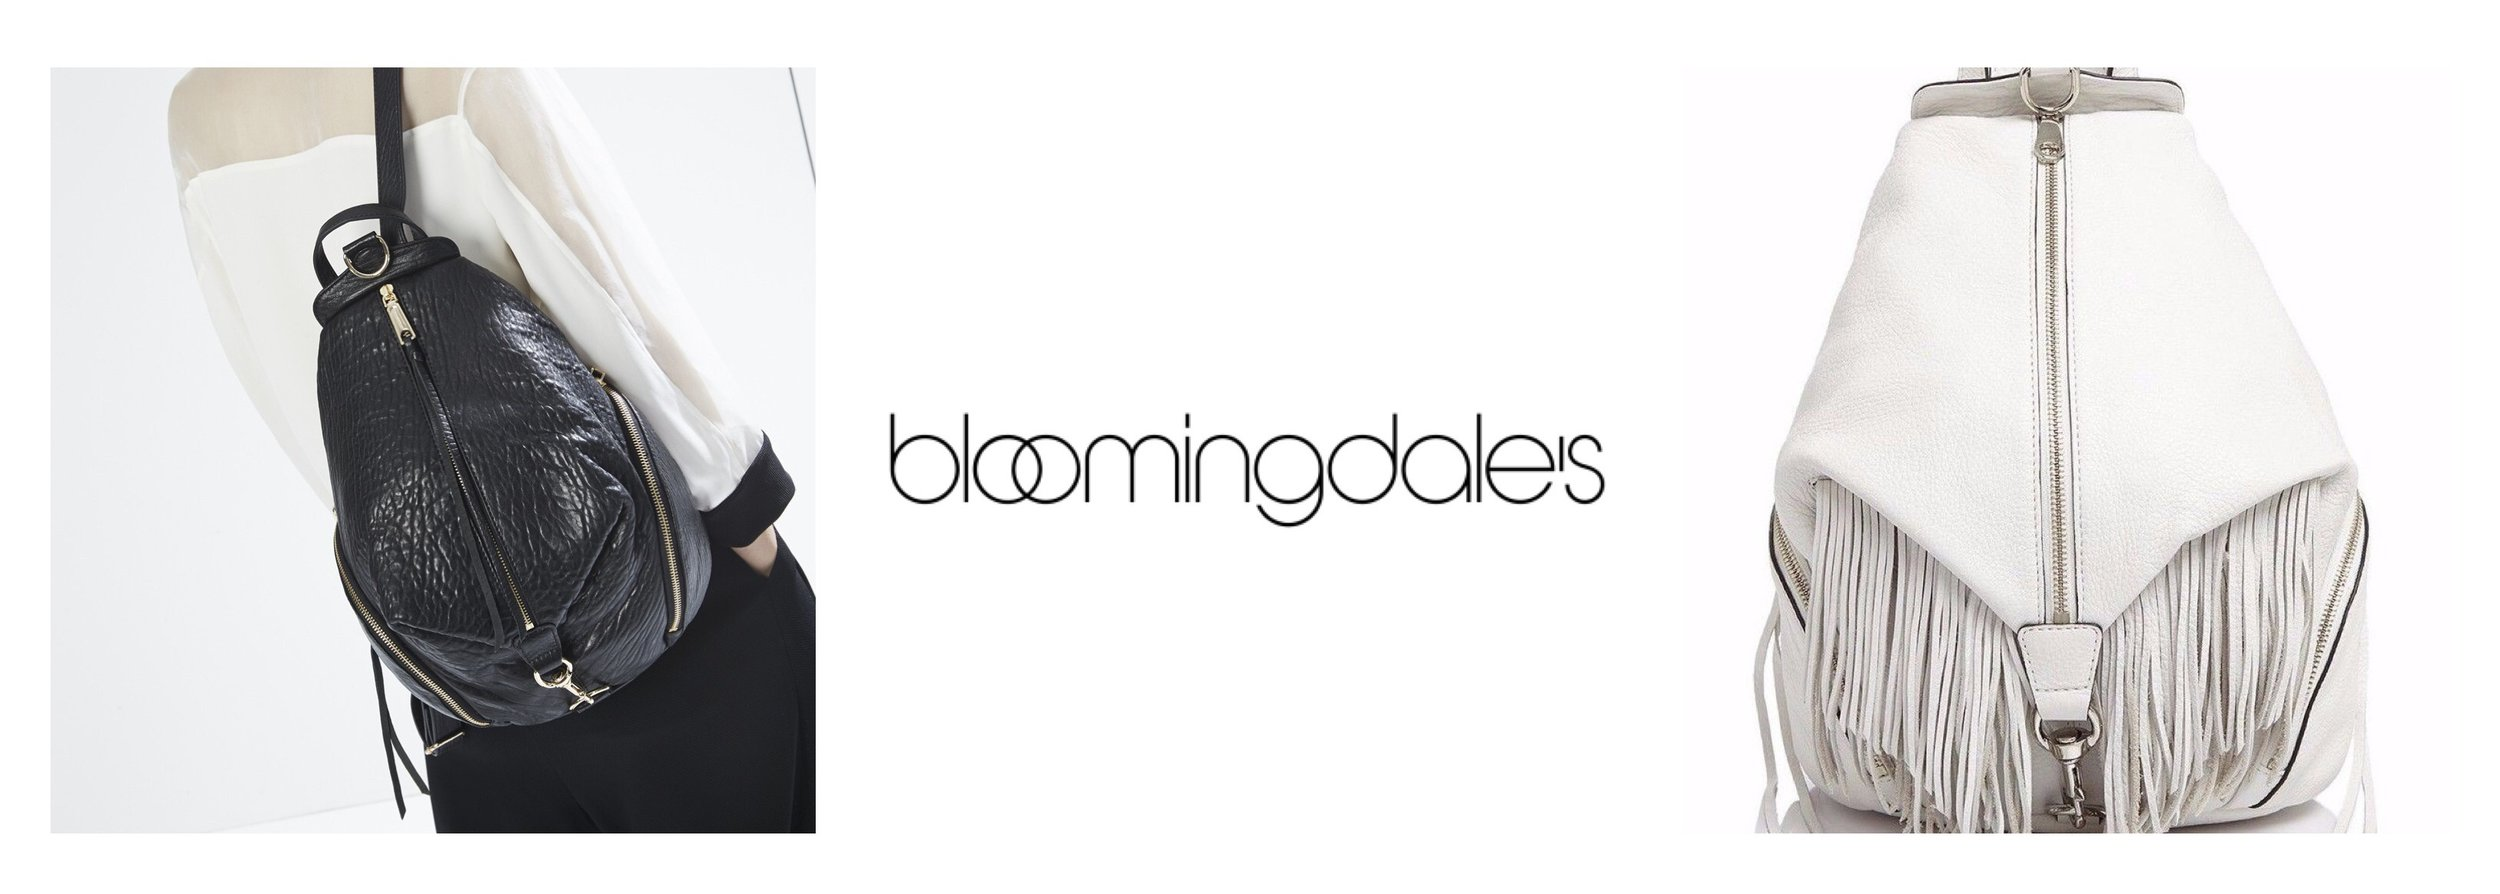 Save 25% off at Bloomingdales.com on select regular & sale priced items Featured: Rebecca Minkoff Julian Backpack, now $221